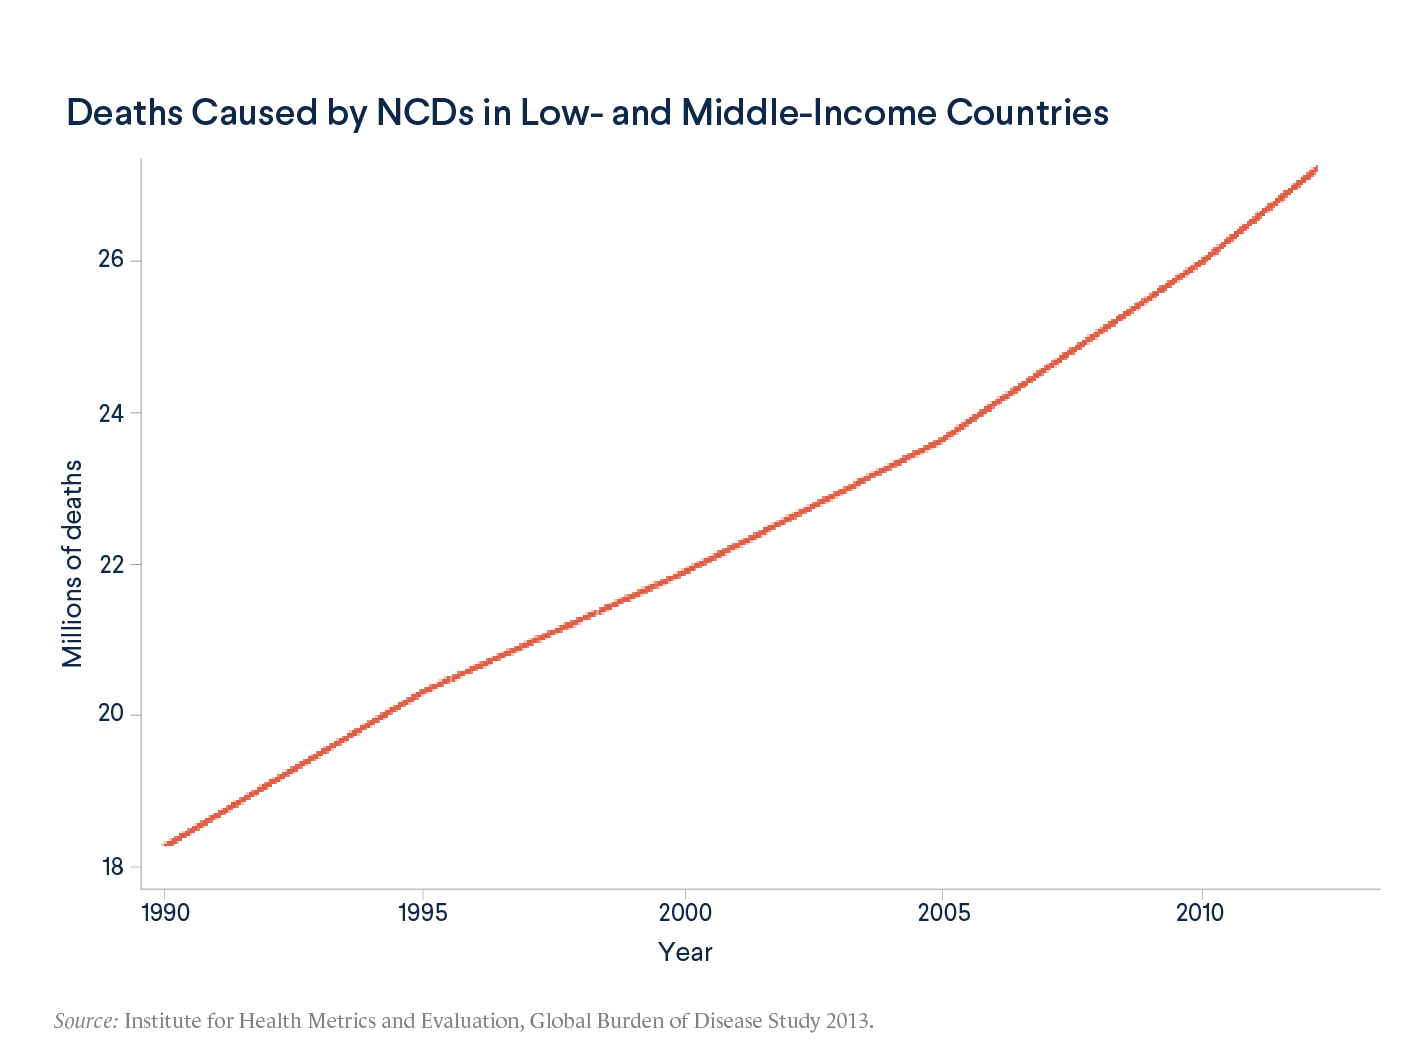 Deaths Caused by NCDs in Low- and Middle-Income Countries